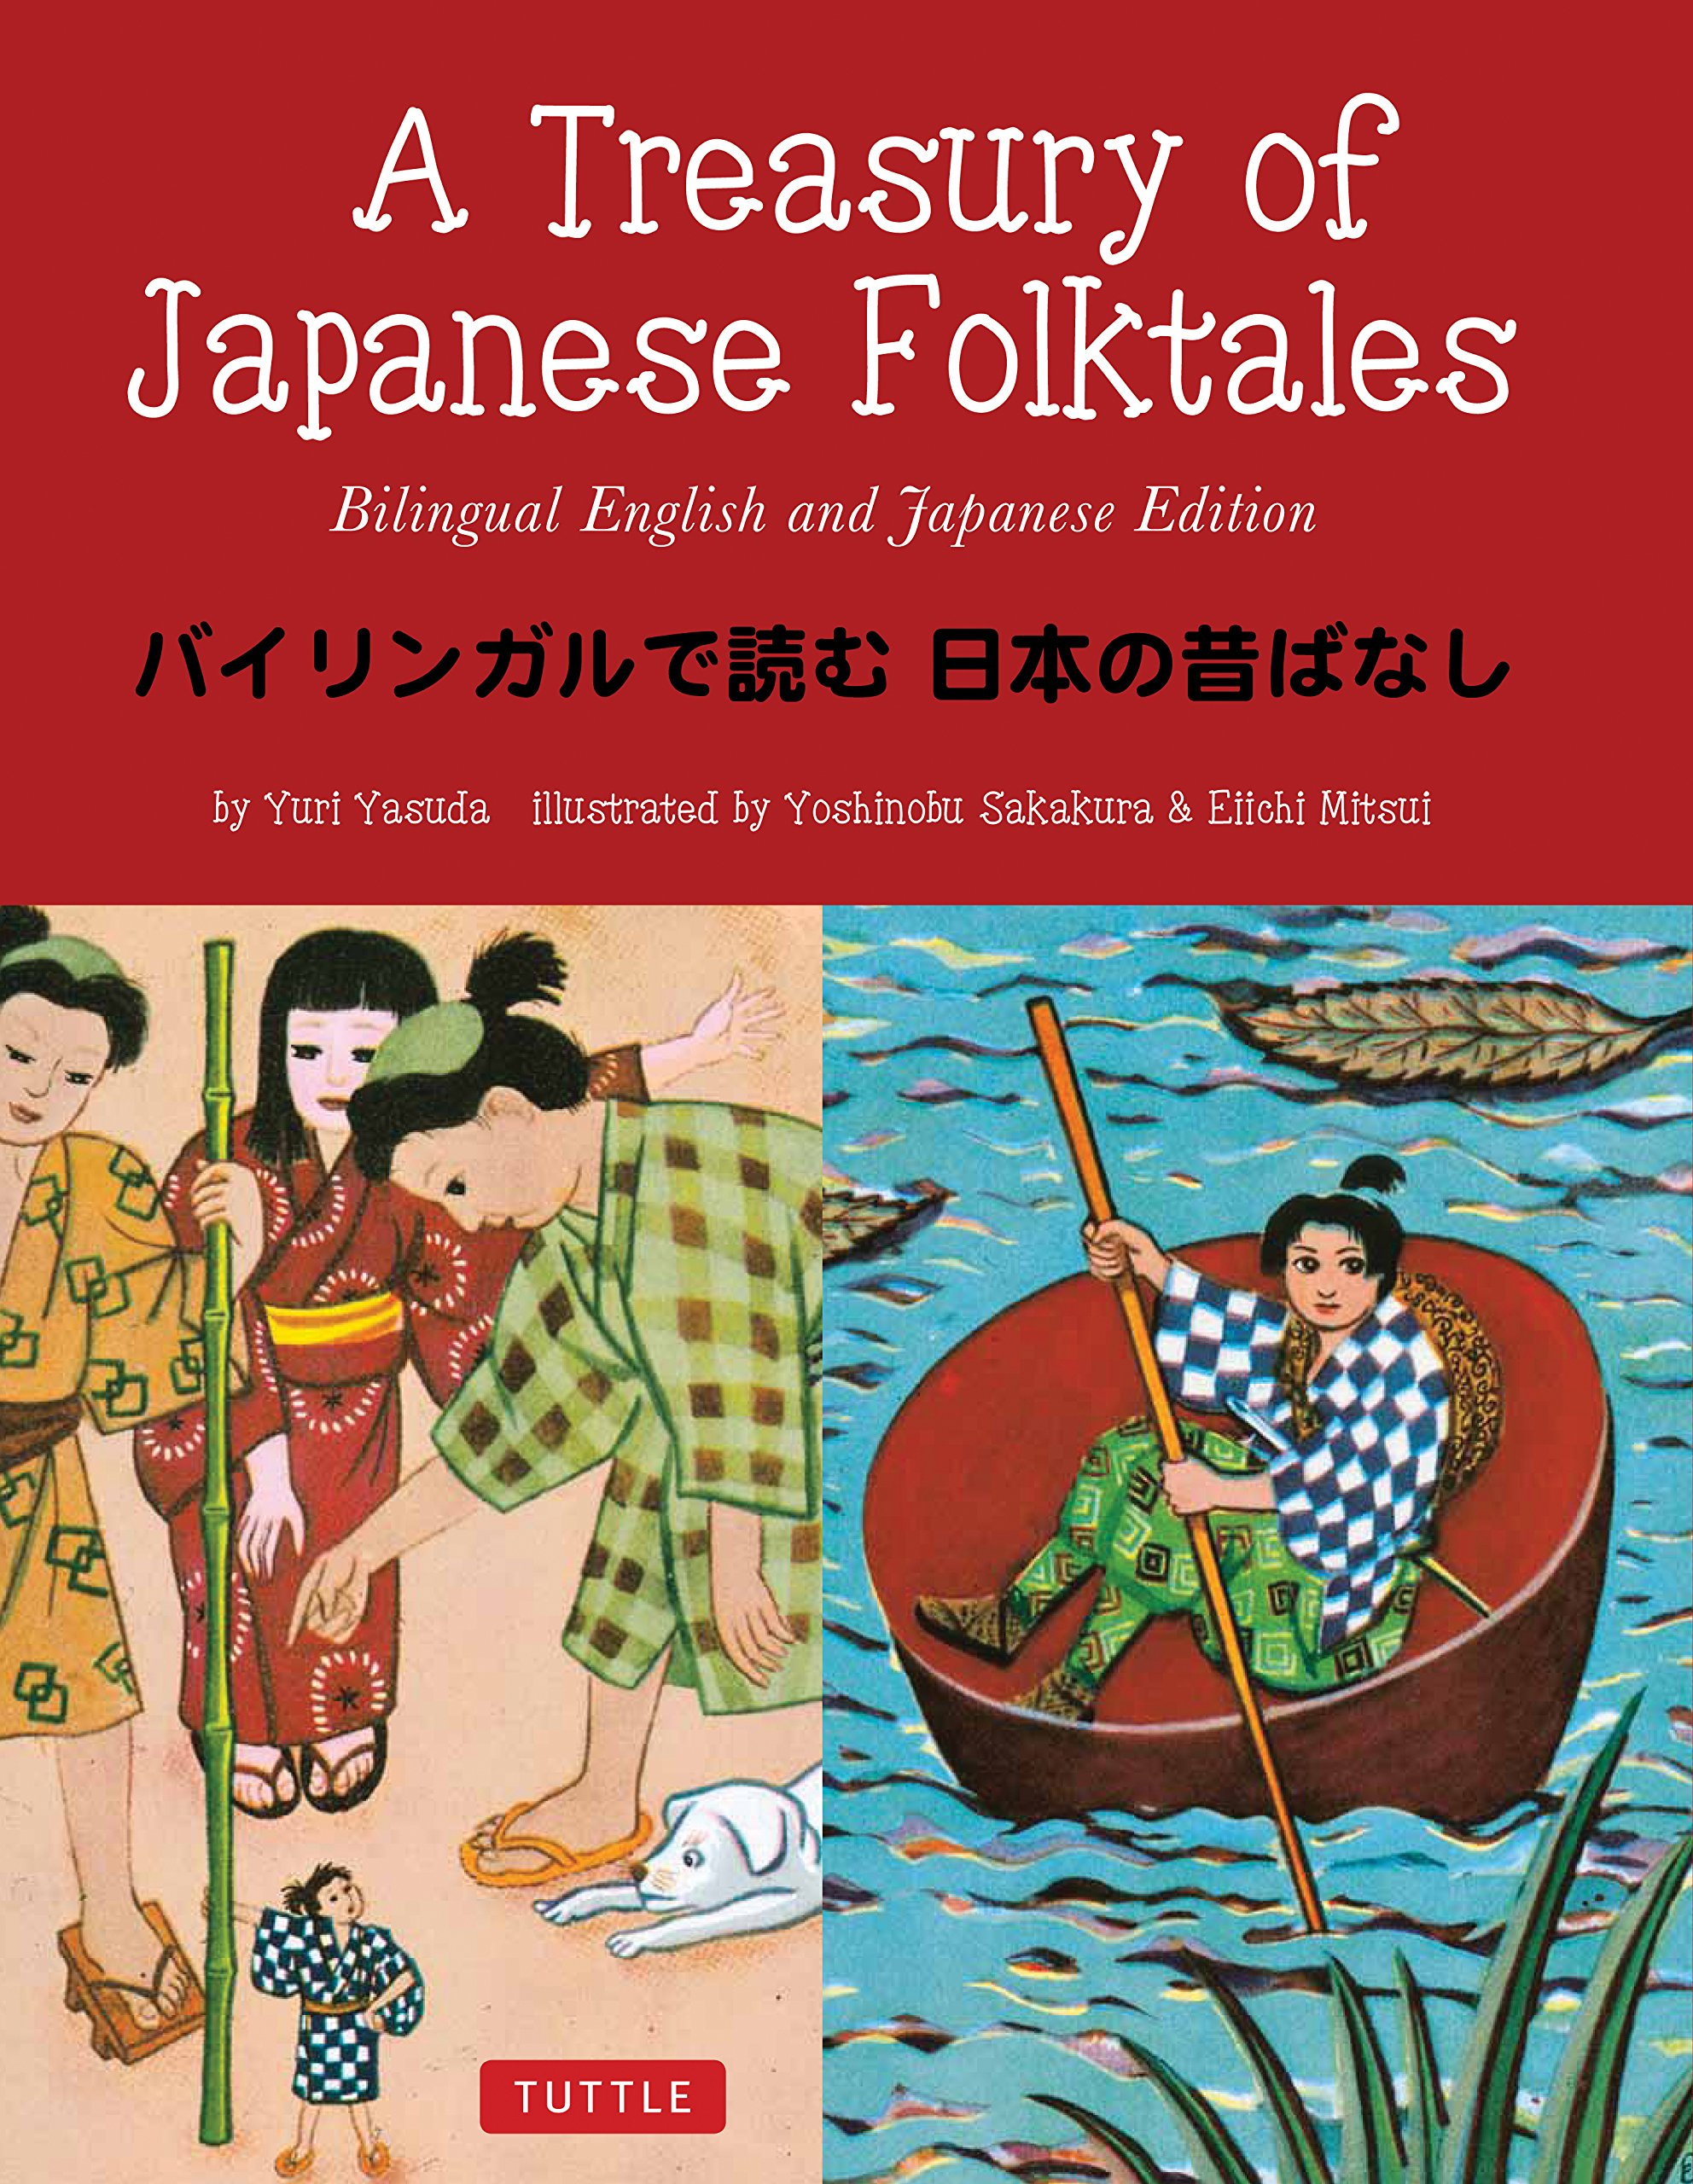 A Treasury Of Japanese Folktales Bilingual English And Edition Yuri Yasuda Yoshinobu Sakakura Yumi Matsunari Yamaguchi 9784805310793